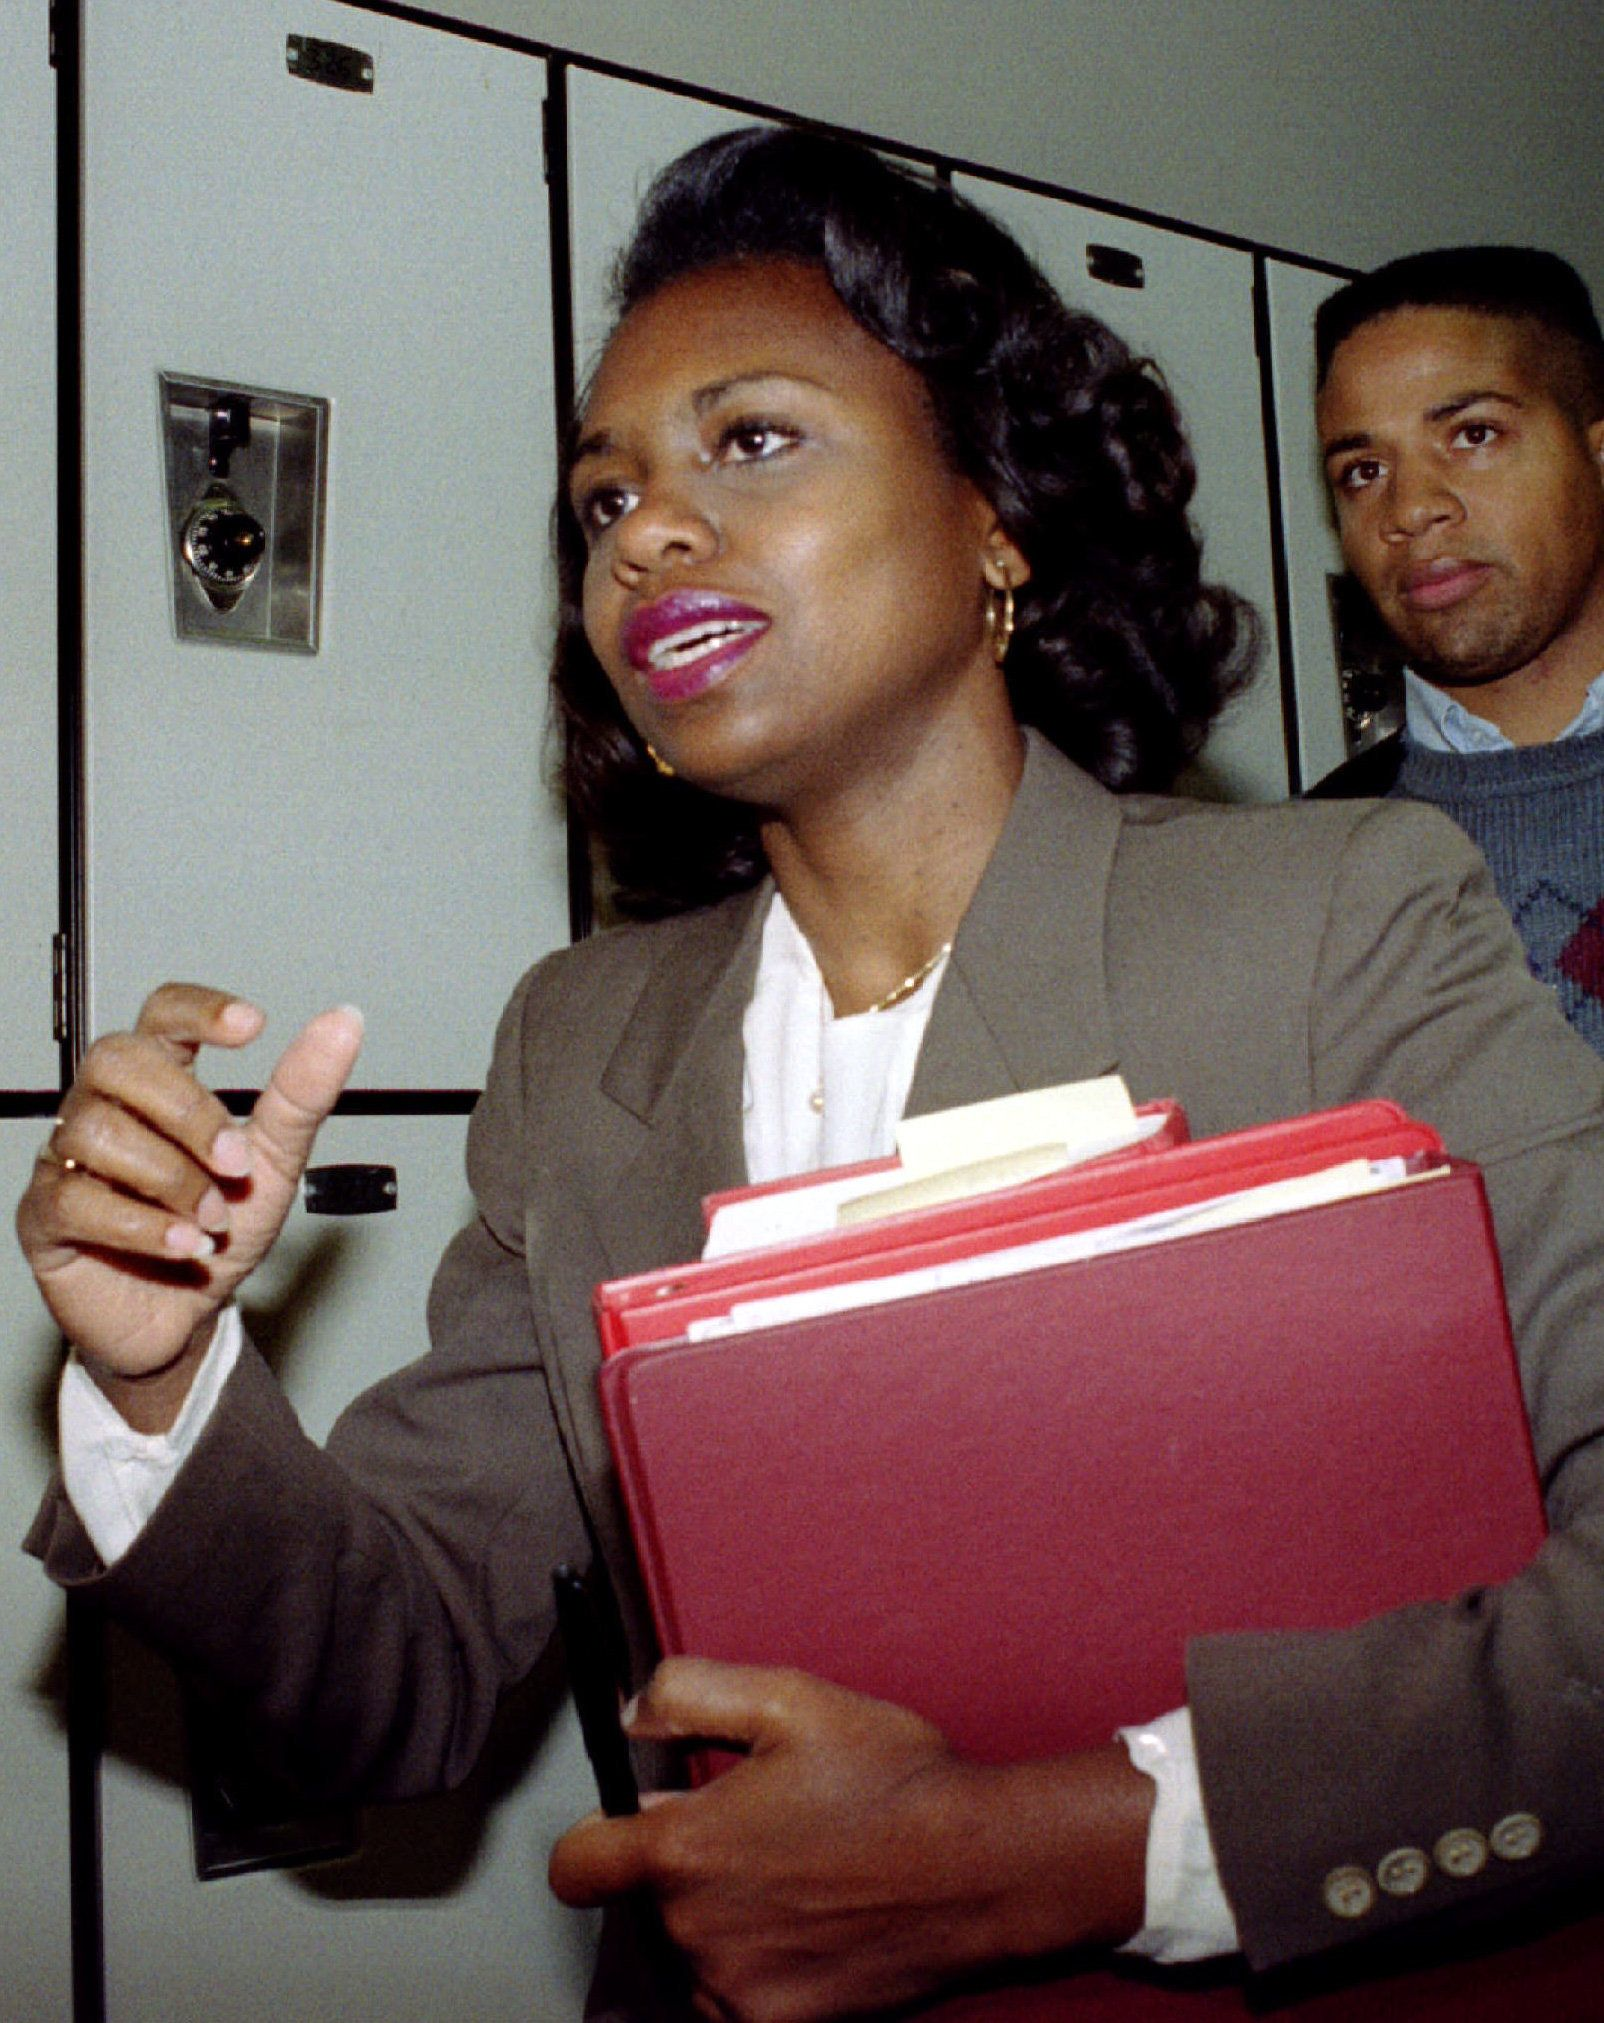 FILE PHOTO OCT 91 - Anita Hill is shown while going to a law school class at the same time of the Thomas confirmation hearings in 1991. Oklahoma University law school Dean C. Peter Goplerud said March 16 that Hill would resign her teaching post efective at the end of the school year. Hill was at the center of the Clarence Thomas Supreme Court nomination hearing after she accused Thomas of sexually harassing her in the 1980's